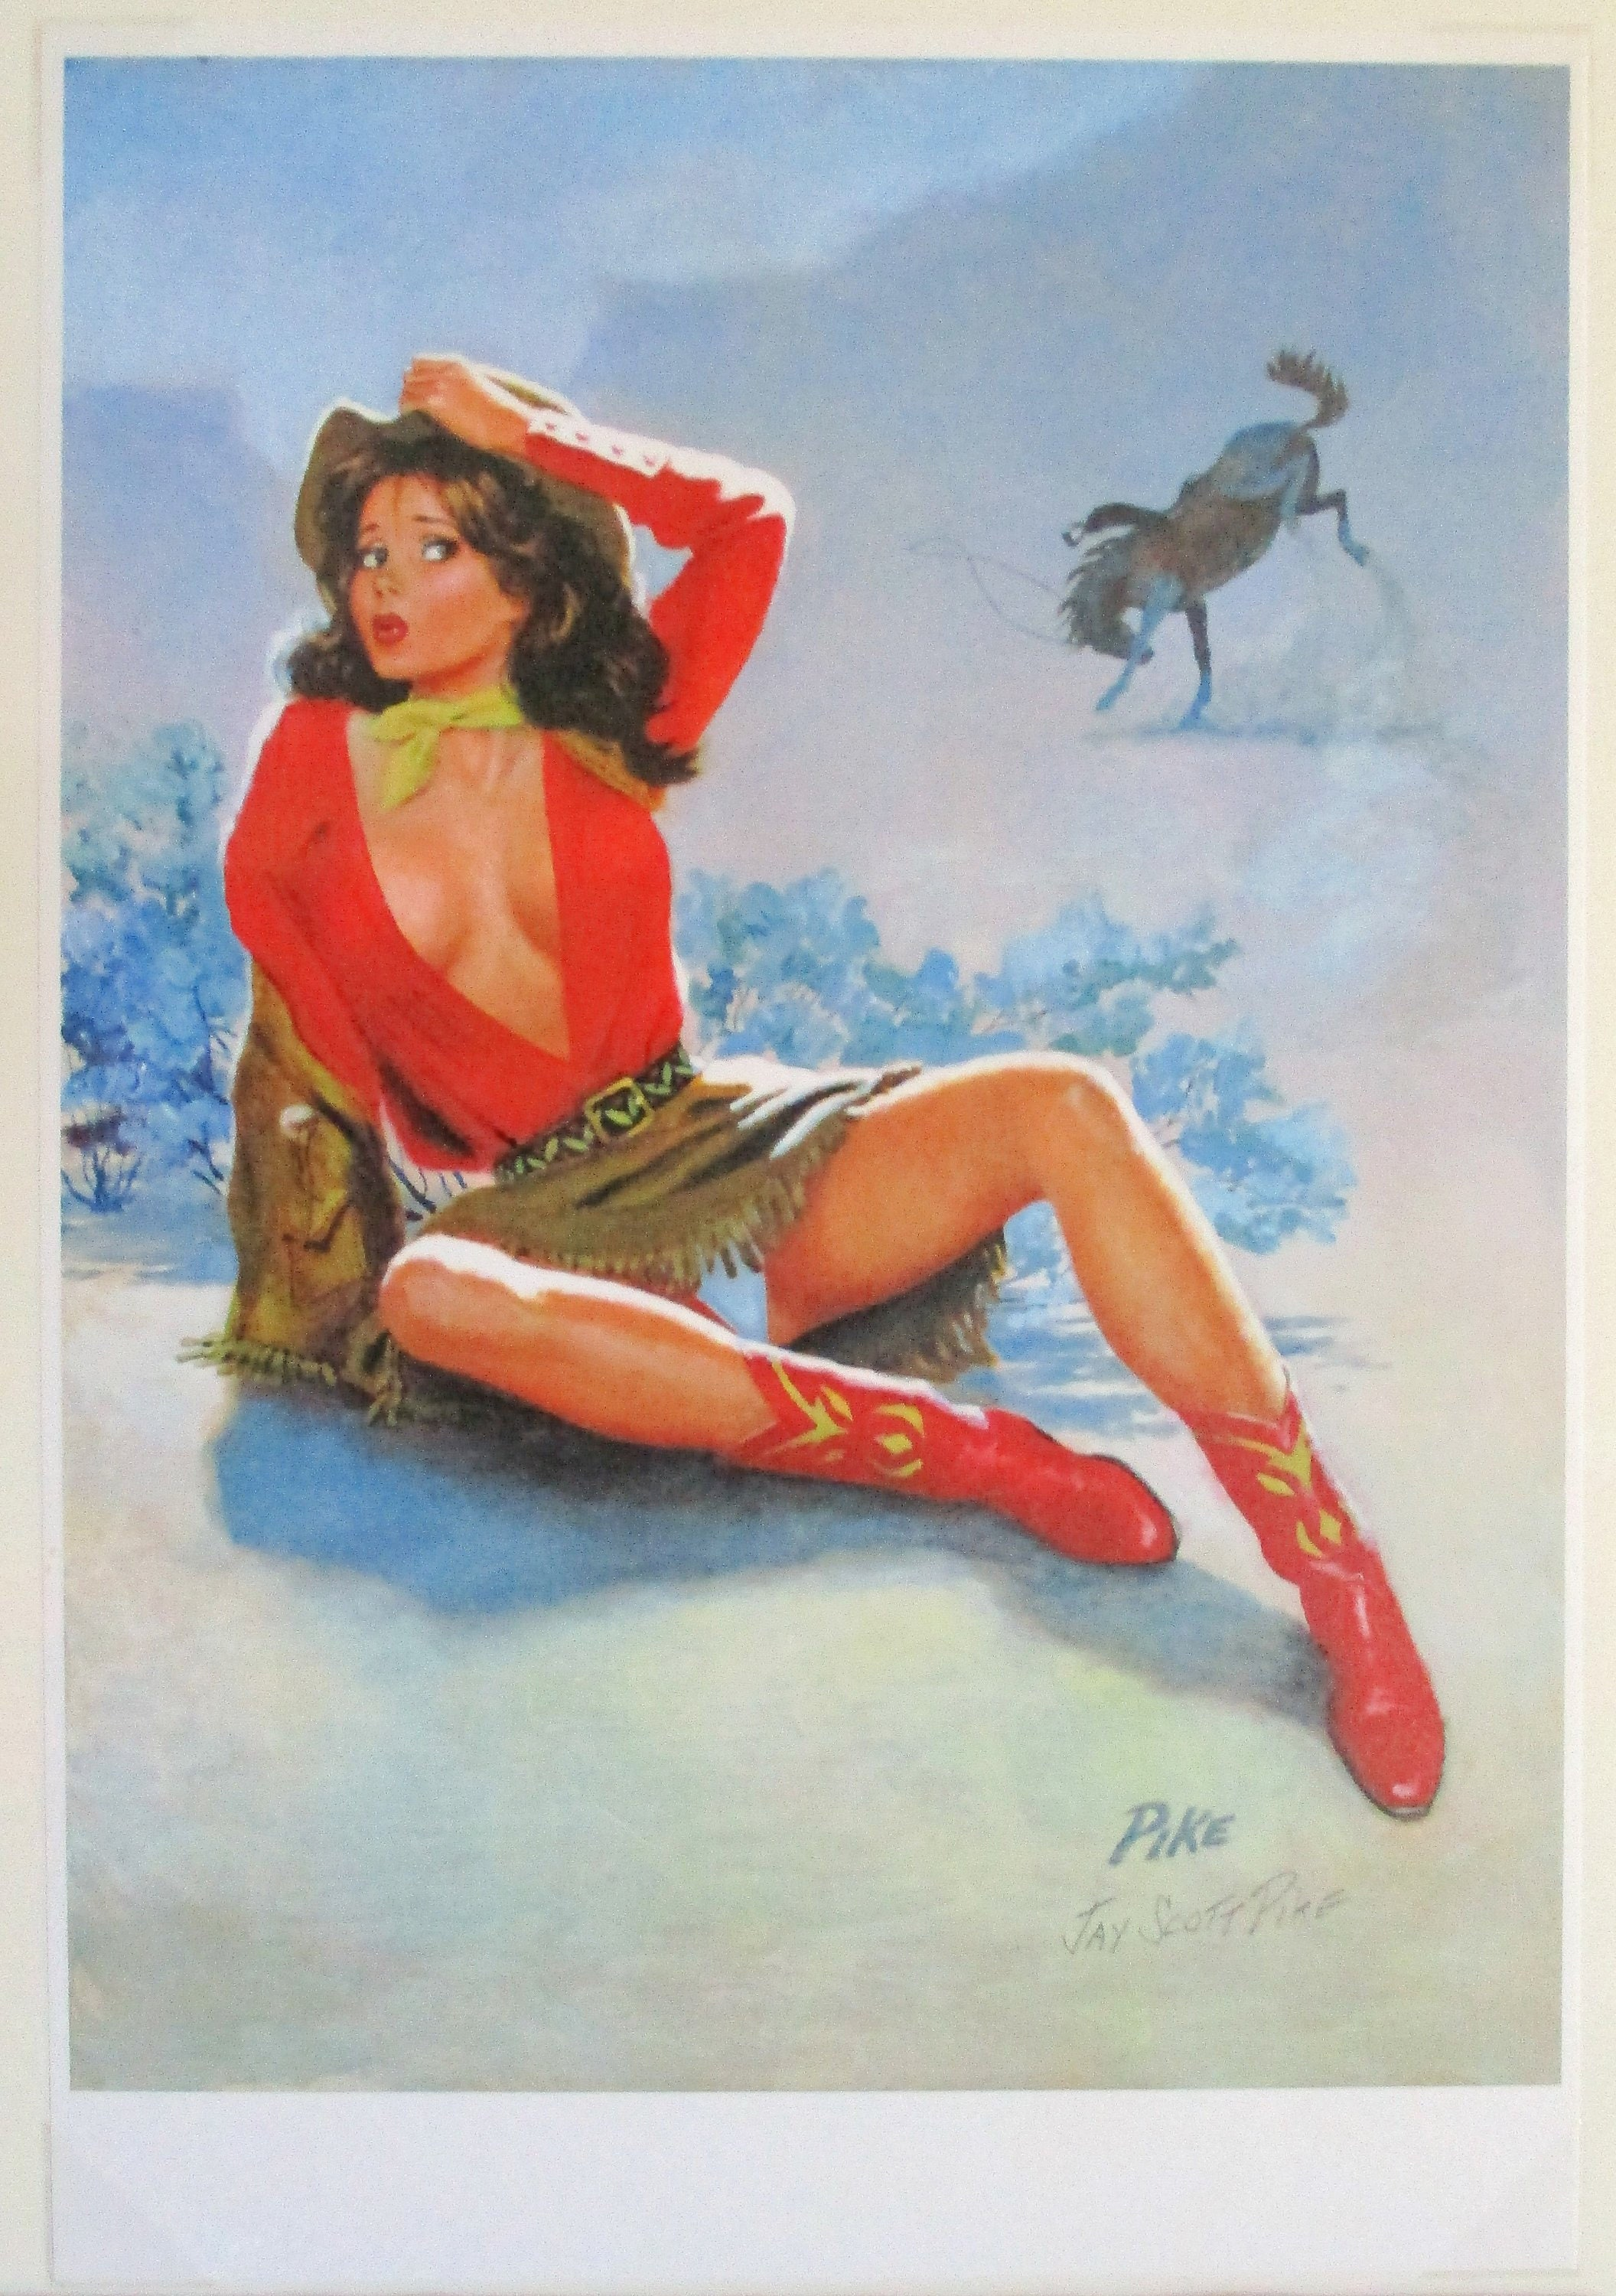 2276ea56668121 Jay Scott Pike signed Pin-up Sexy Cowgirl Calendar Girl | Etsy